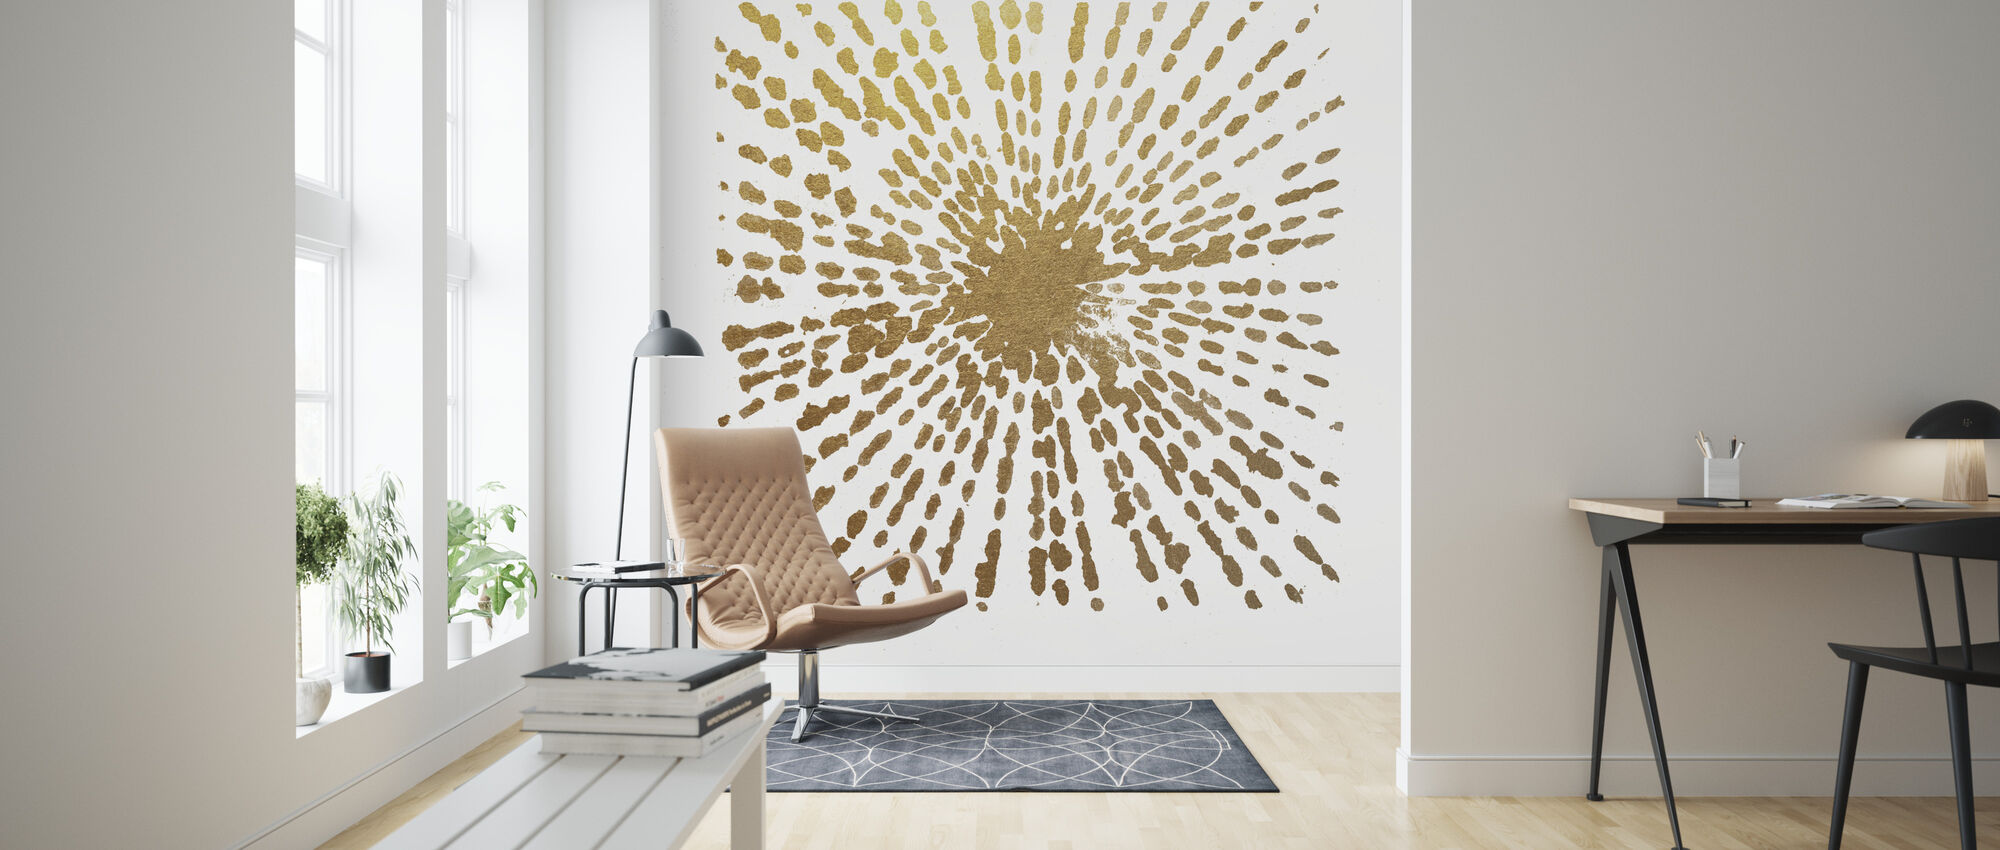 Gold Starburst - Wallpaper - Living Room